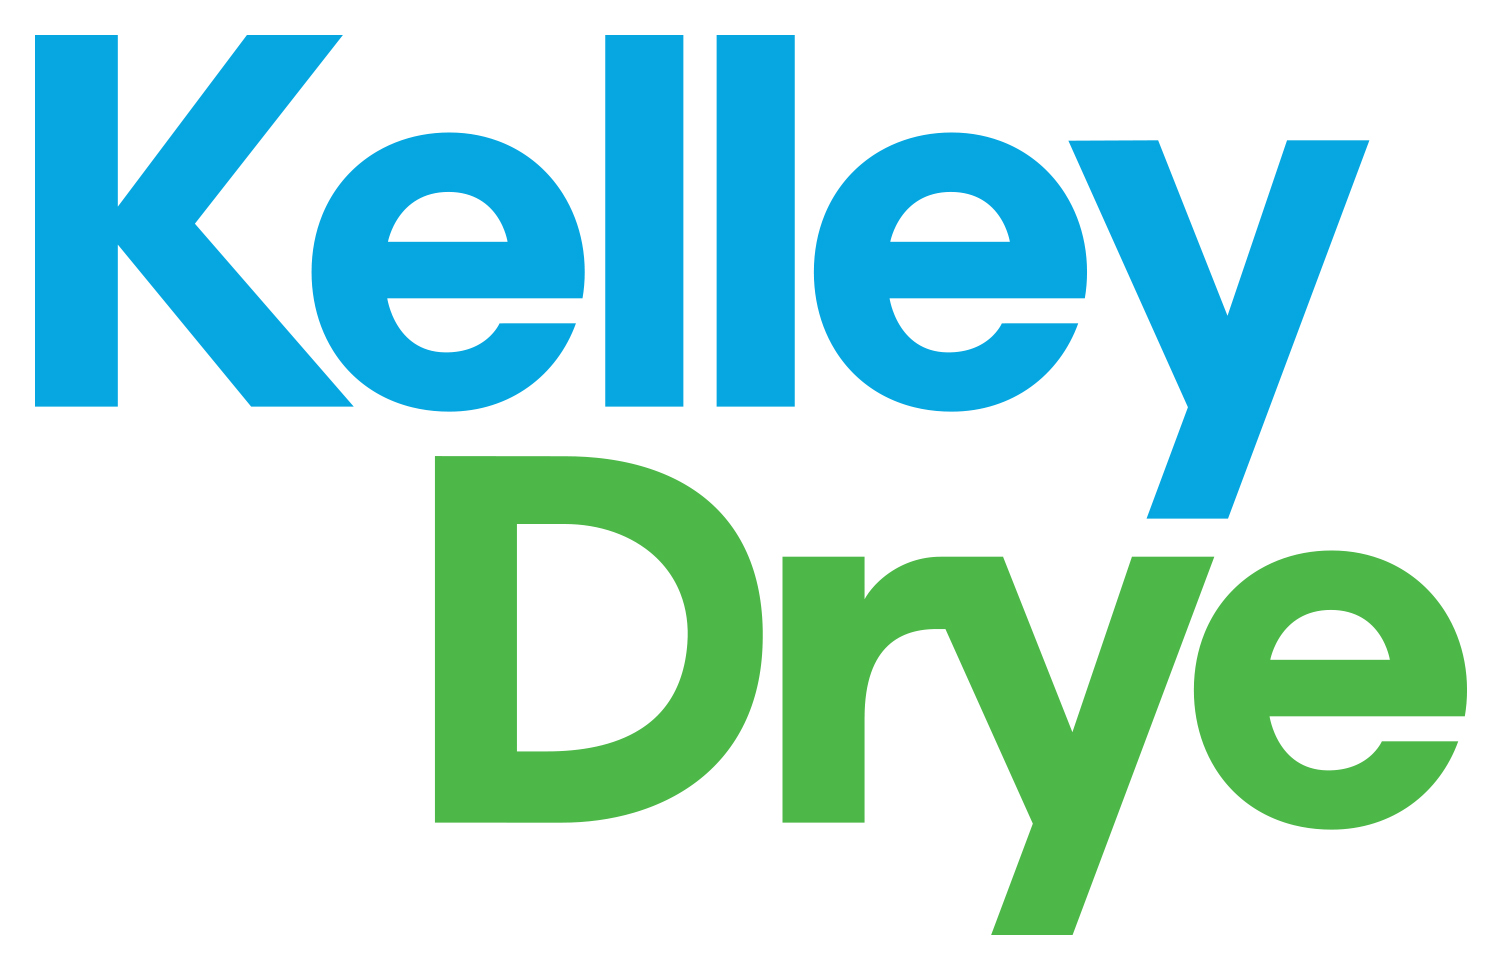 Kelley_Drye_logo_bluegreen_v1_highres(1).jpg